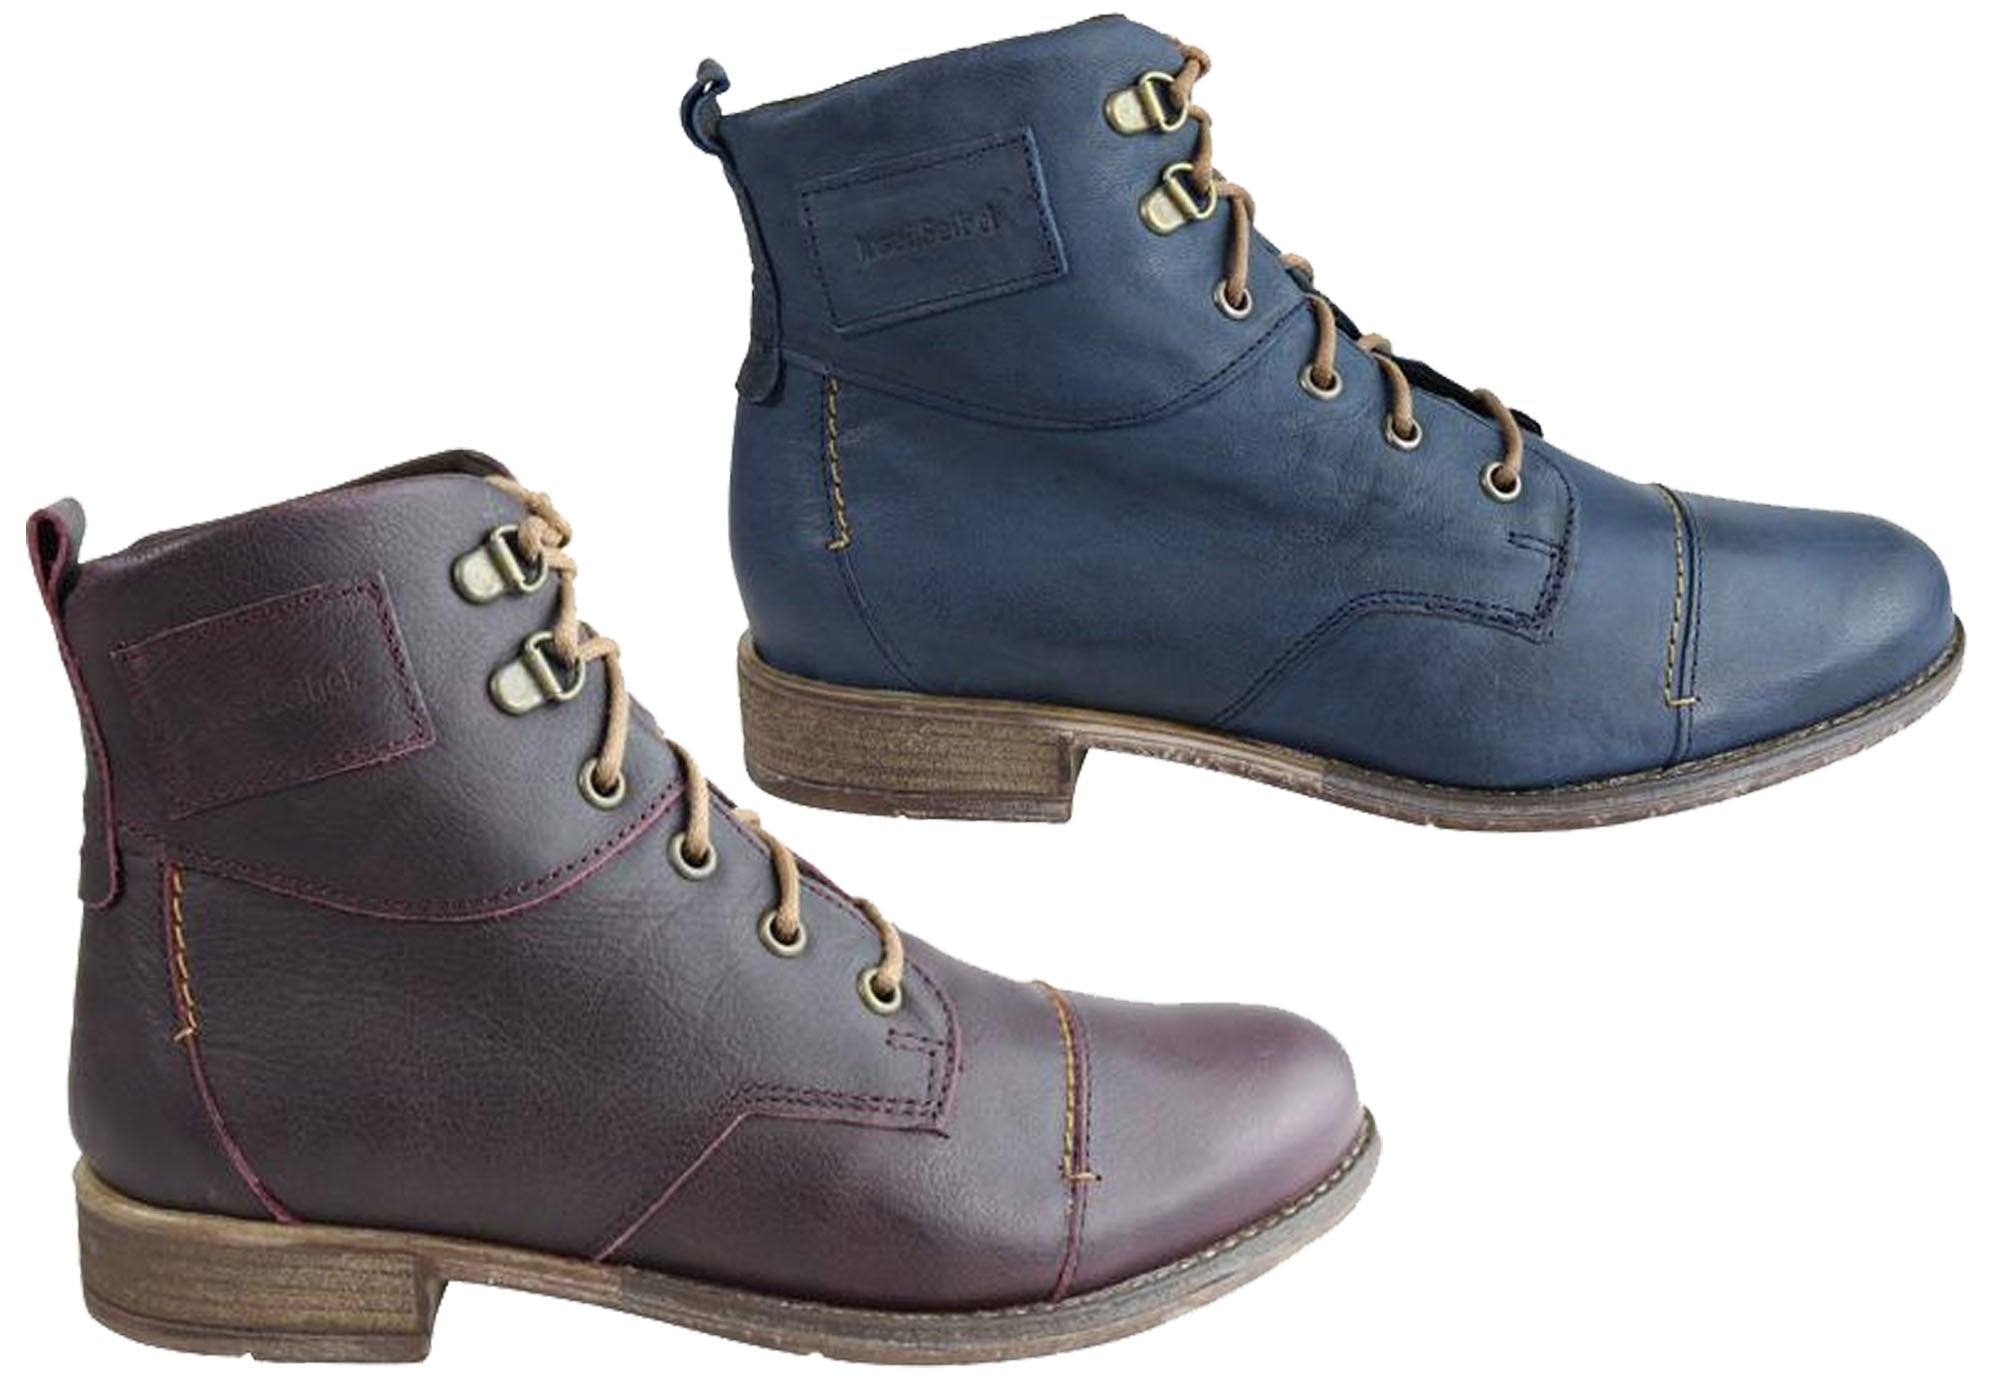 5aeb4112b6a40 Josef Seibel Sienna 17 Womens Comfort Leather Ankle Boots | Brand ...